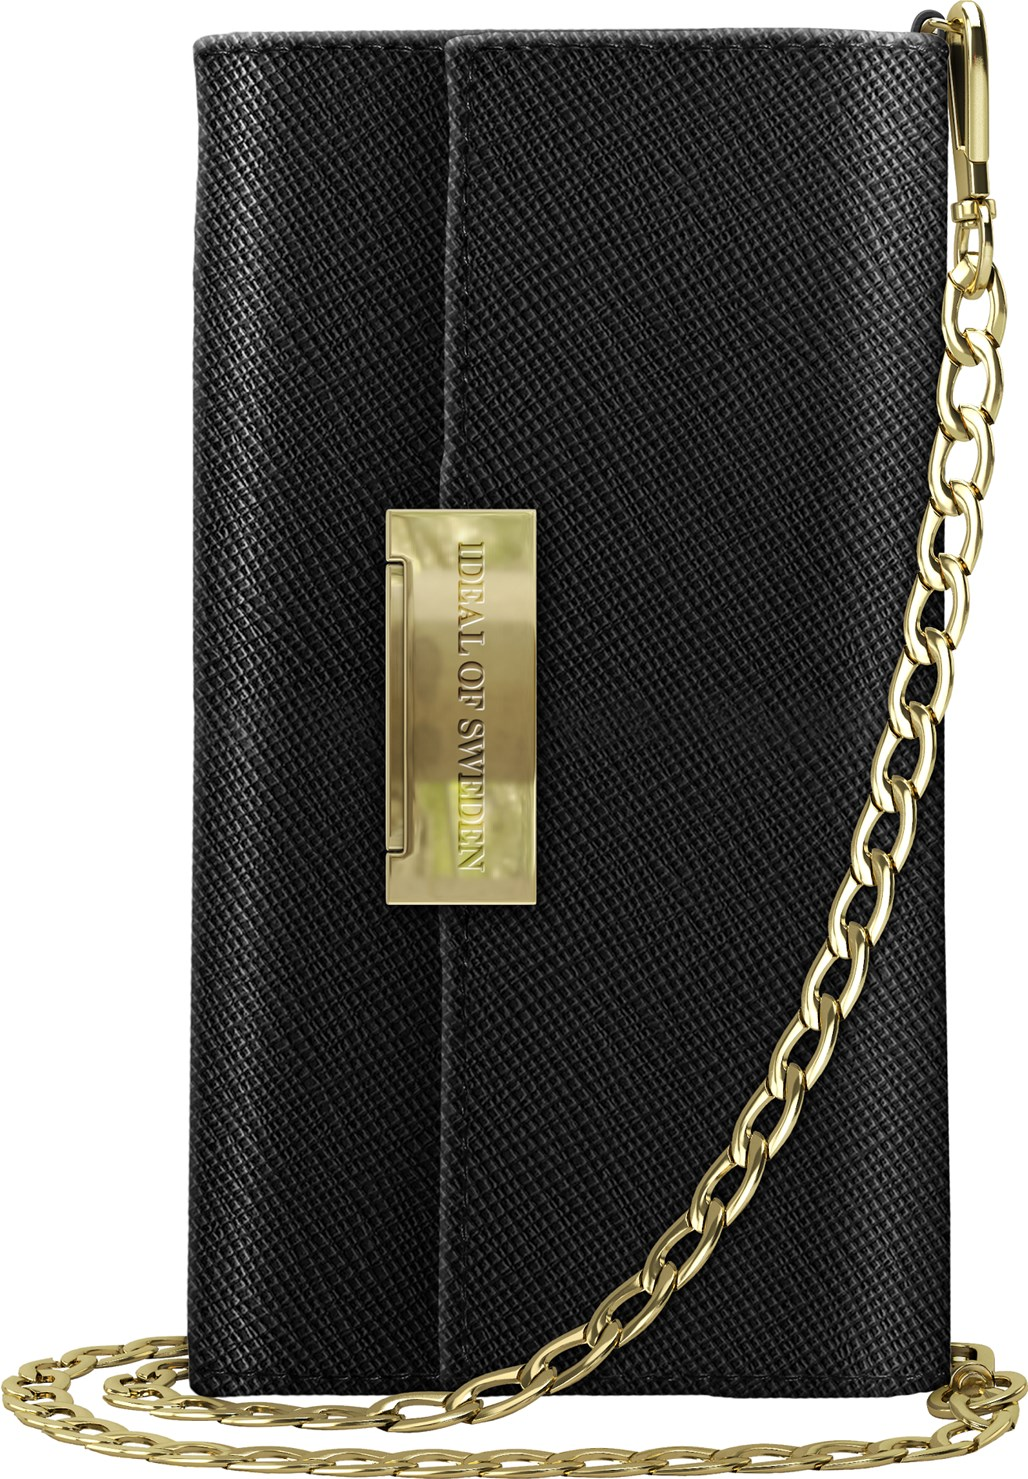 iDeal of Sweden Ideal Kensington Cross Body Clutch Iphone X/Xs Black